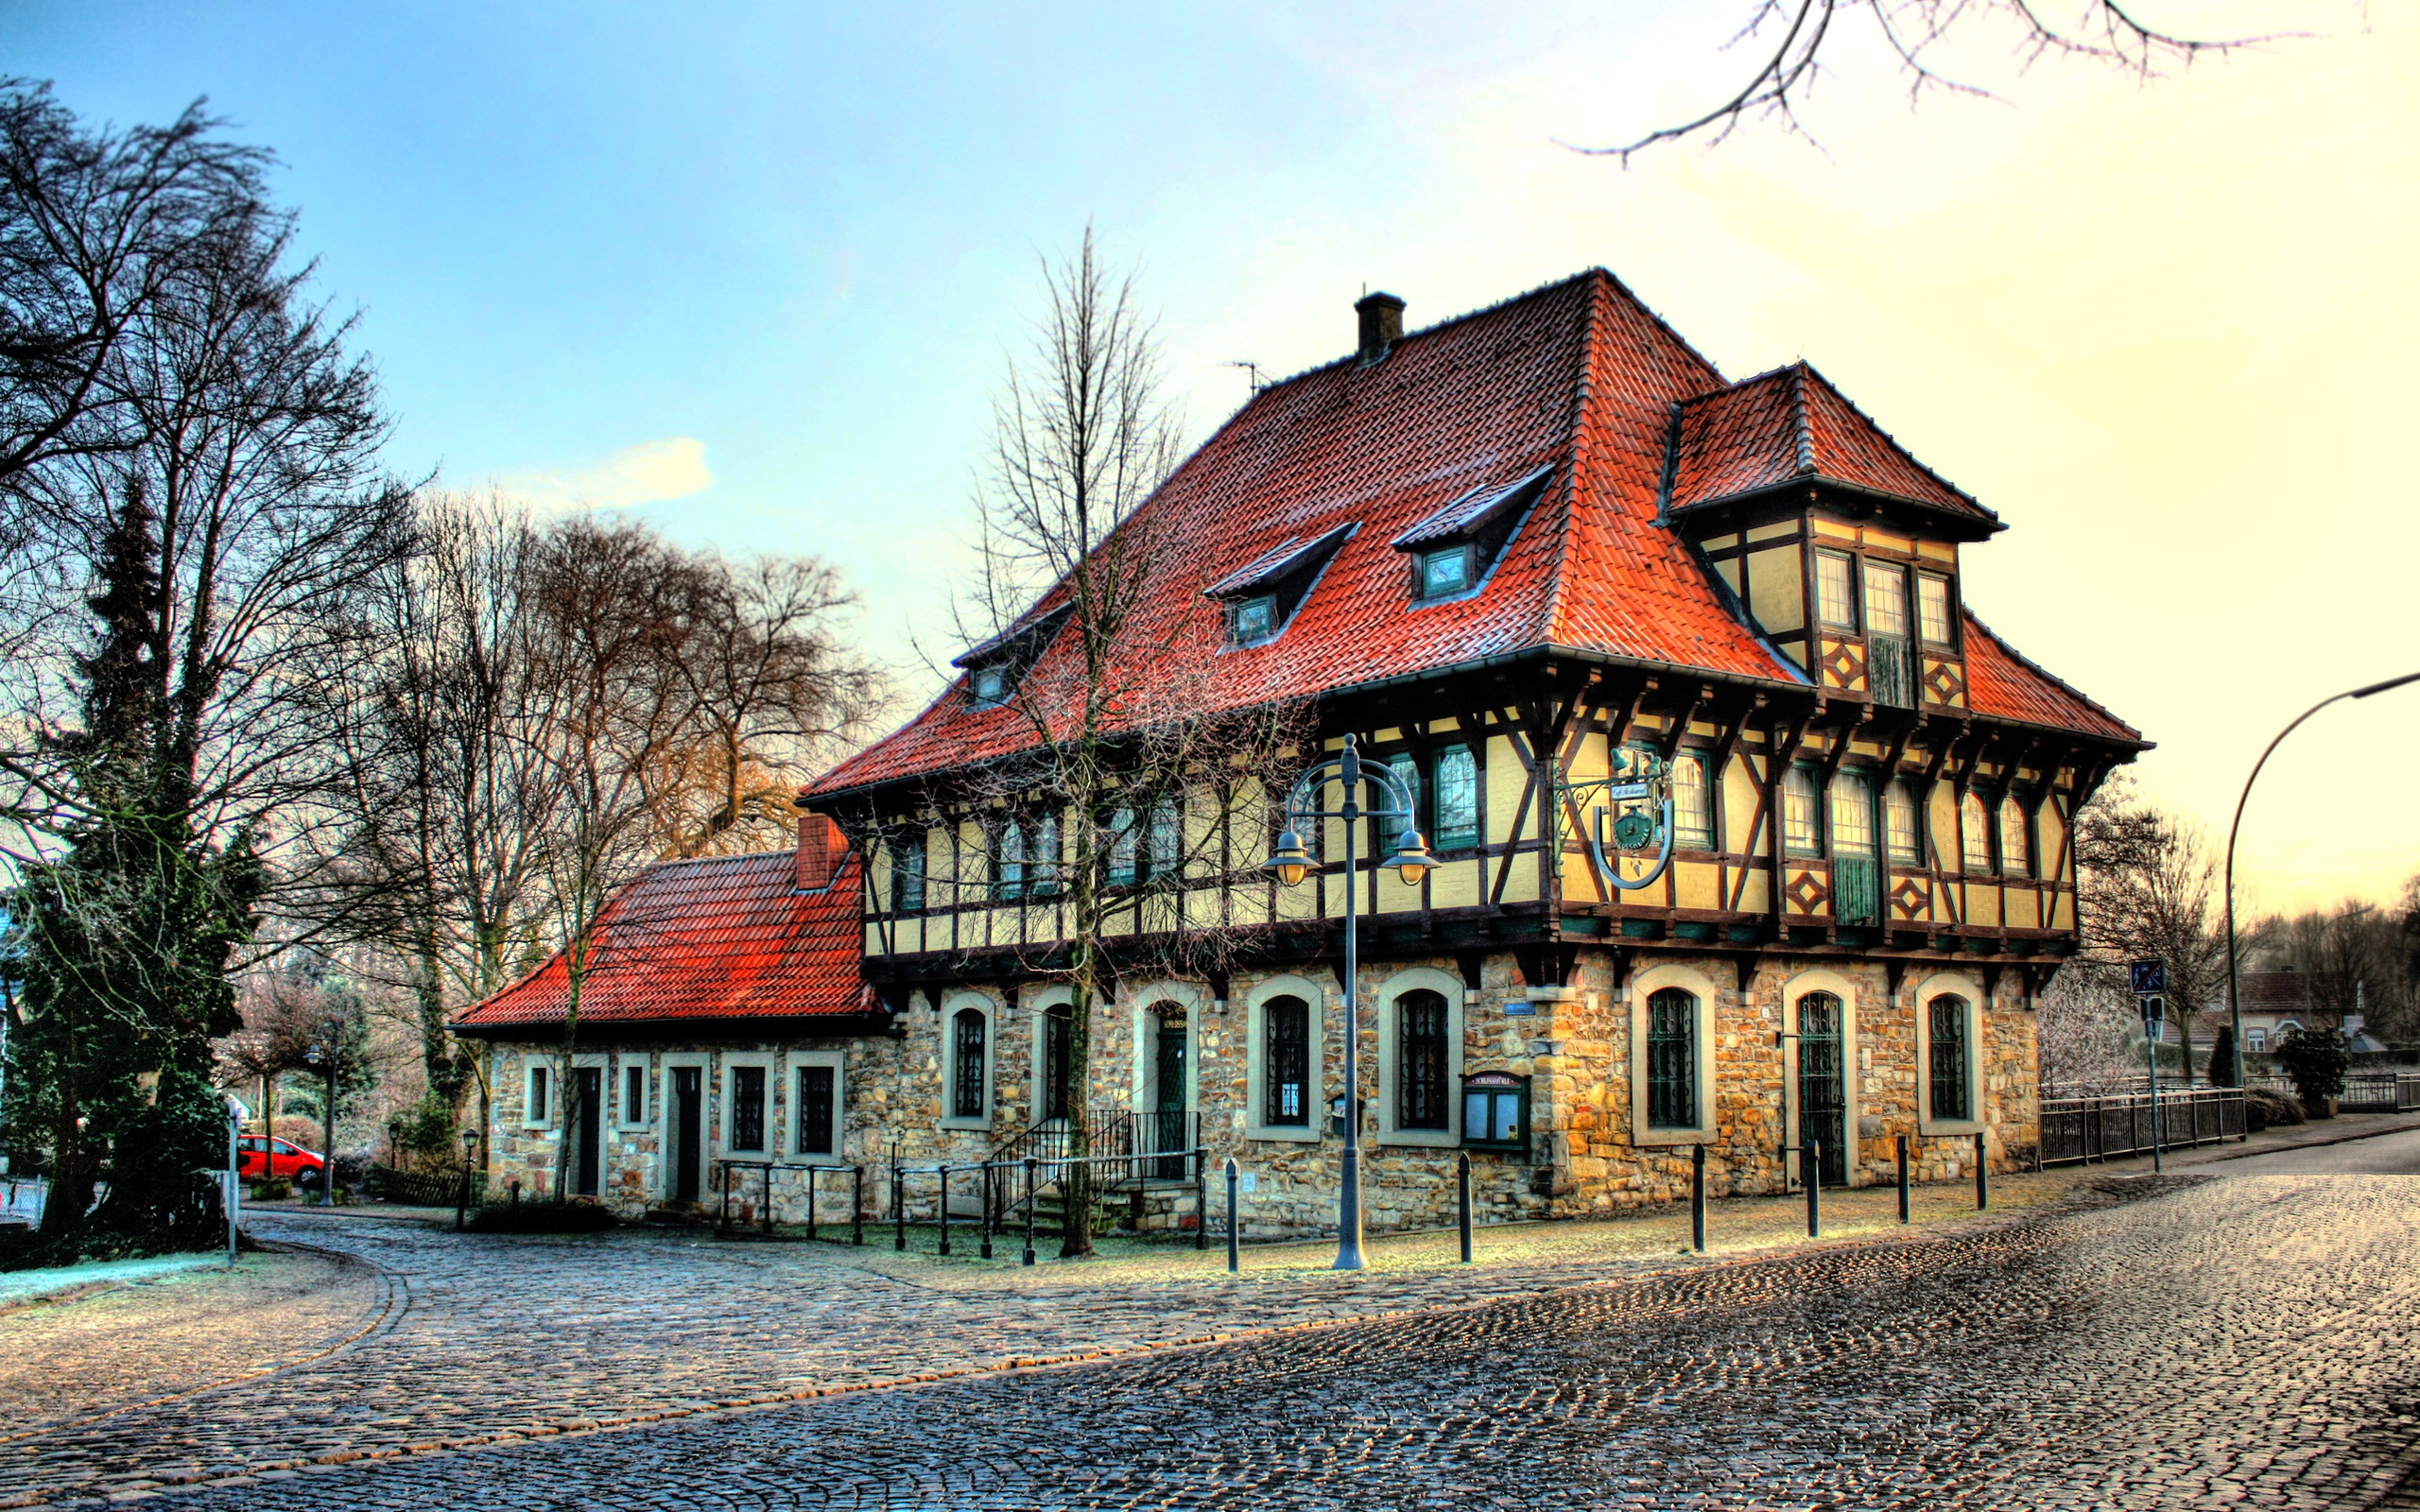 2560x1600 steinfurt hd for Small houses in germany